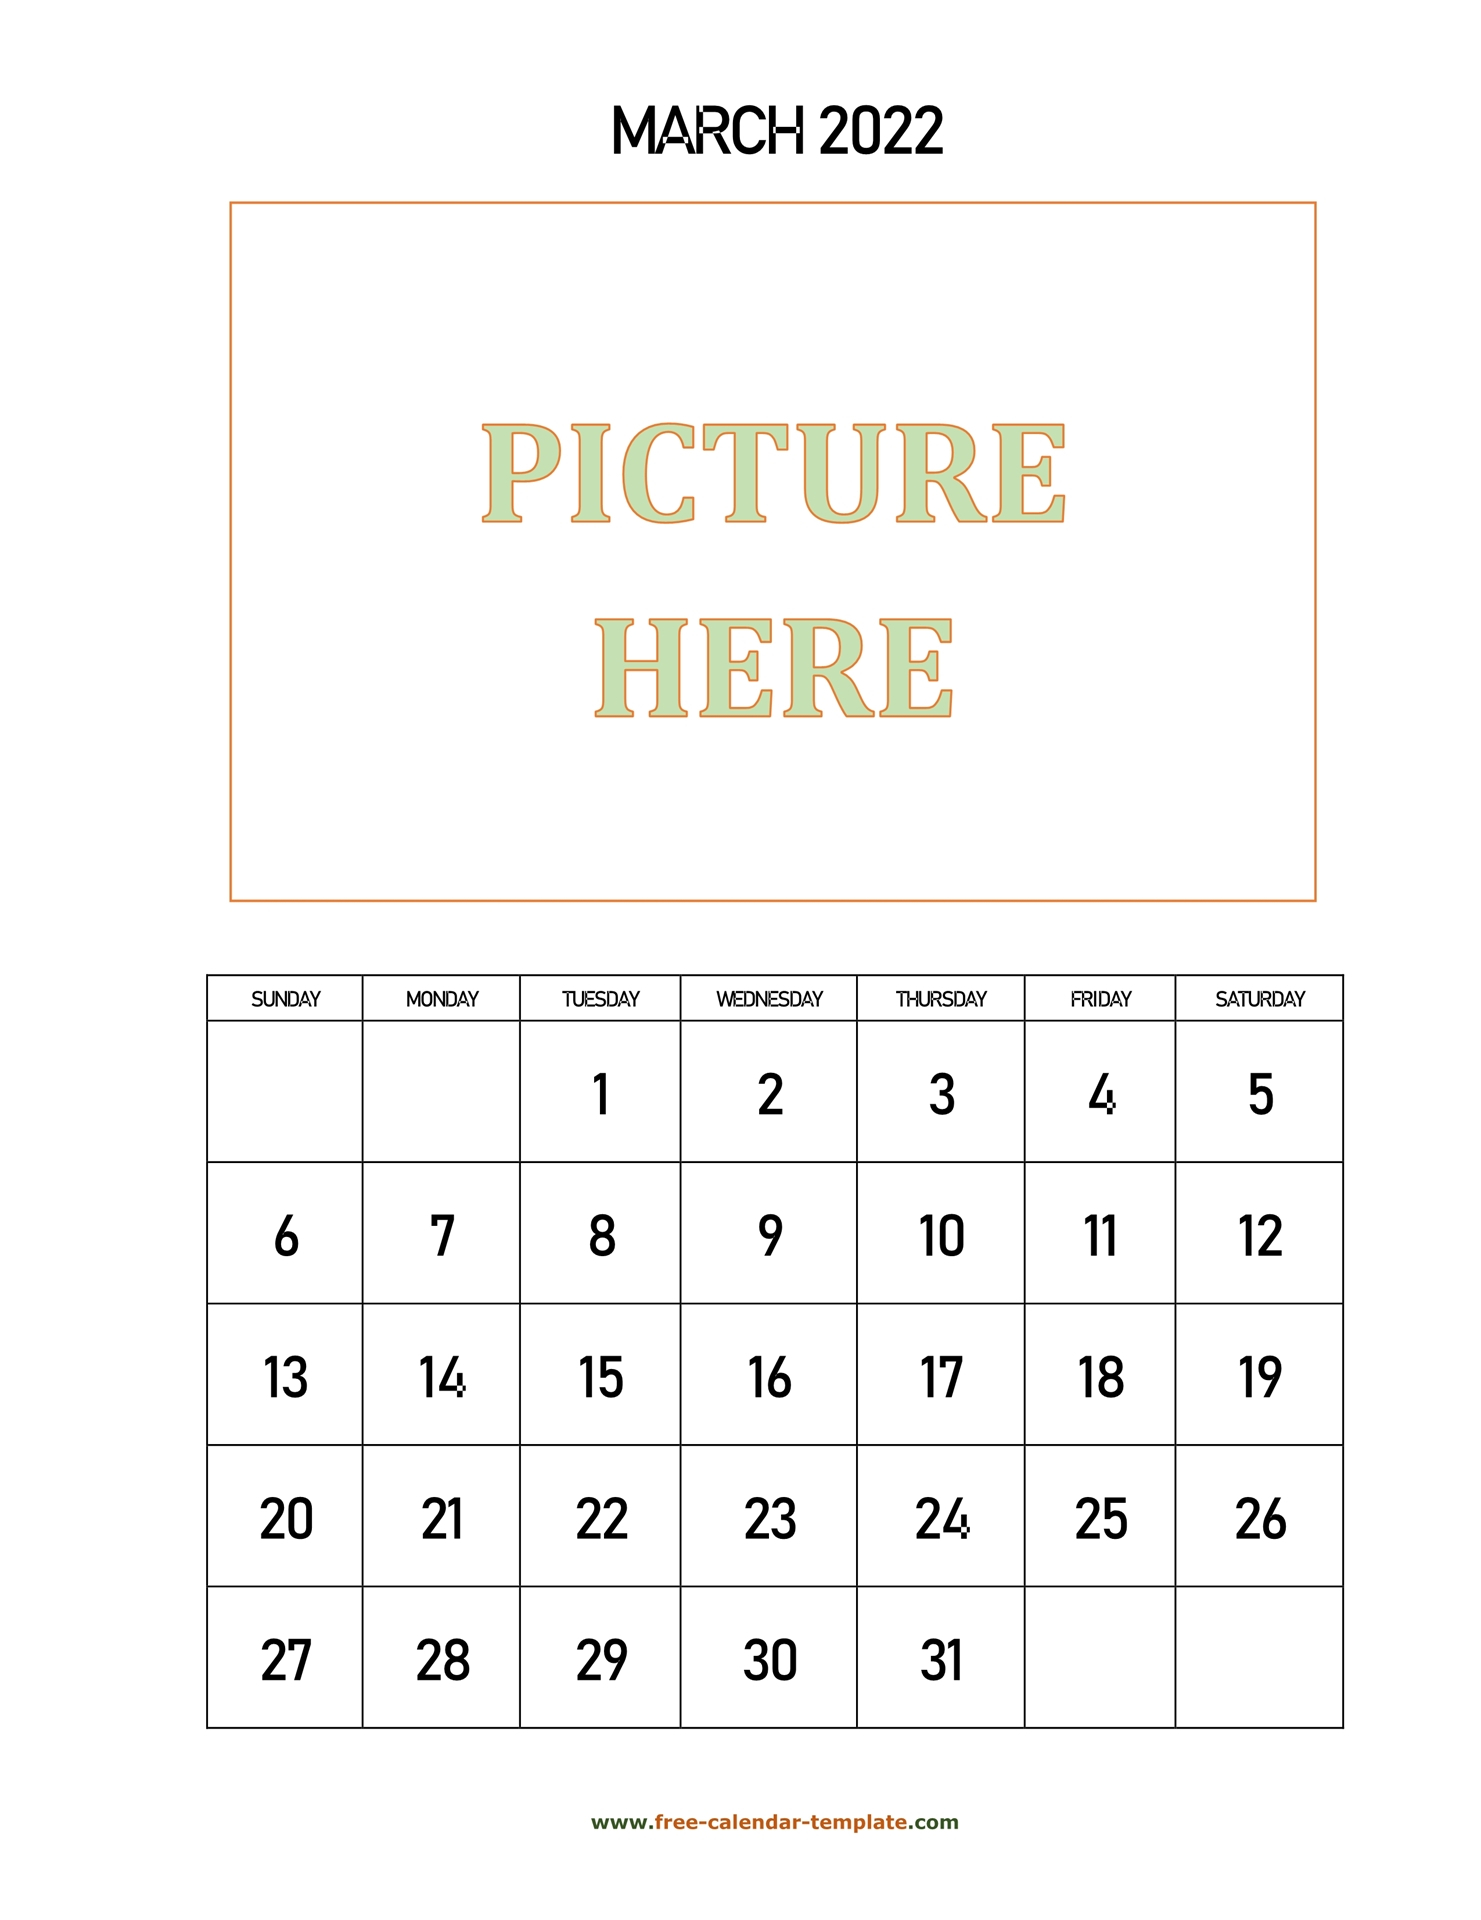 March Printable 2022 Calendar, Space For Add Picture Throughout Caladar For The Mont Of March 2022